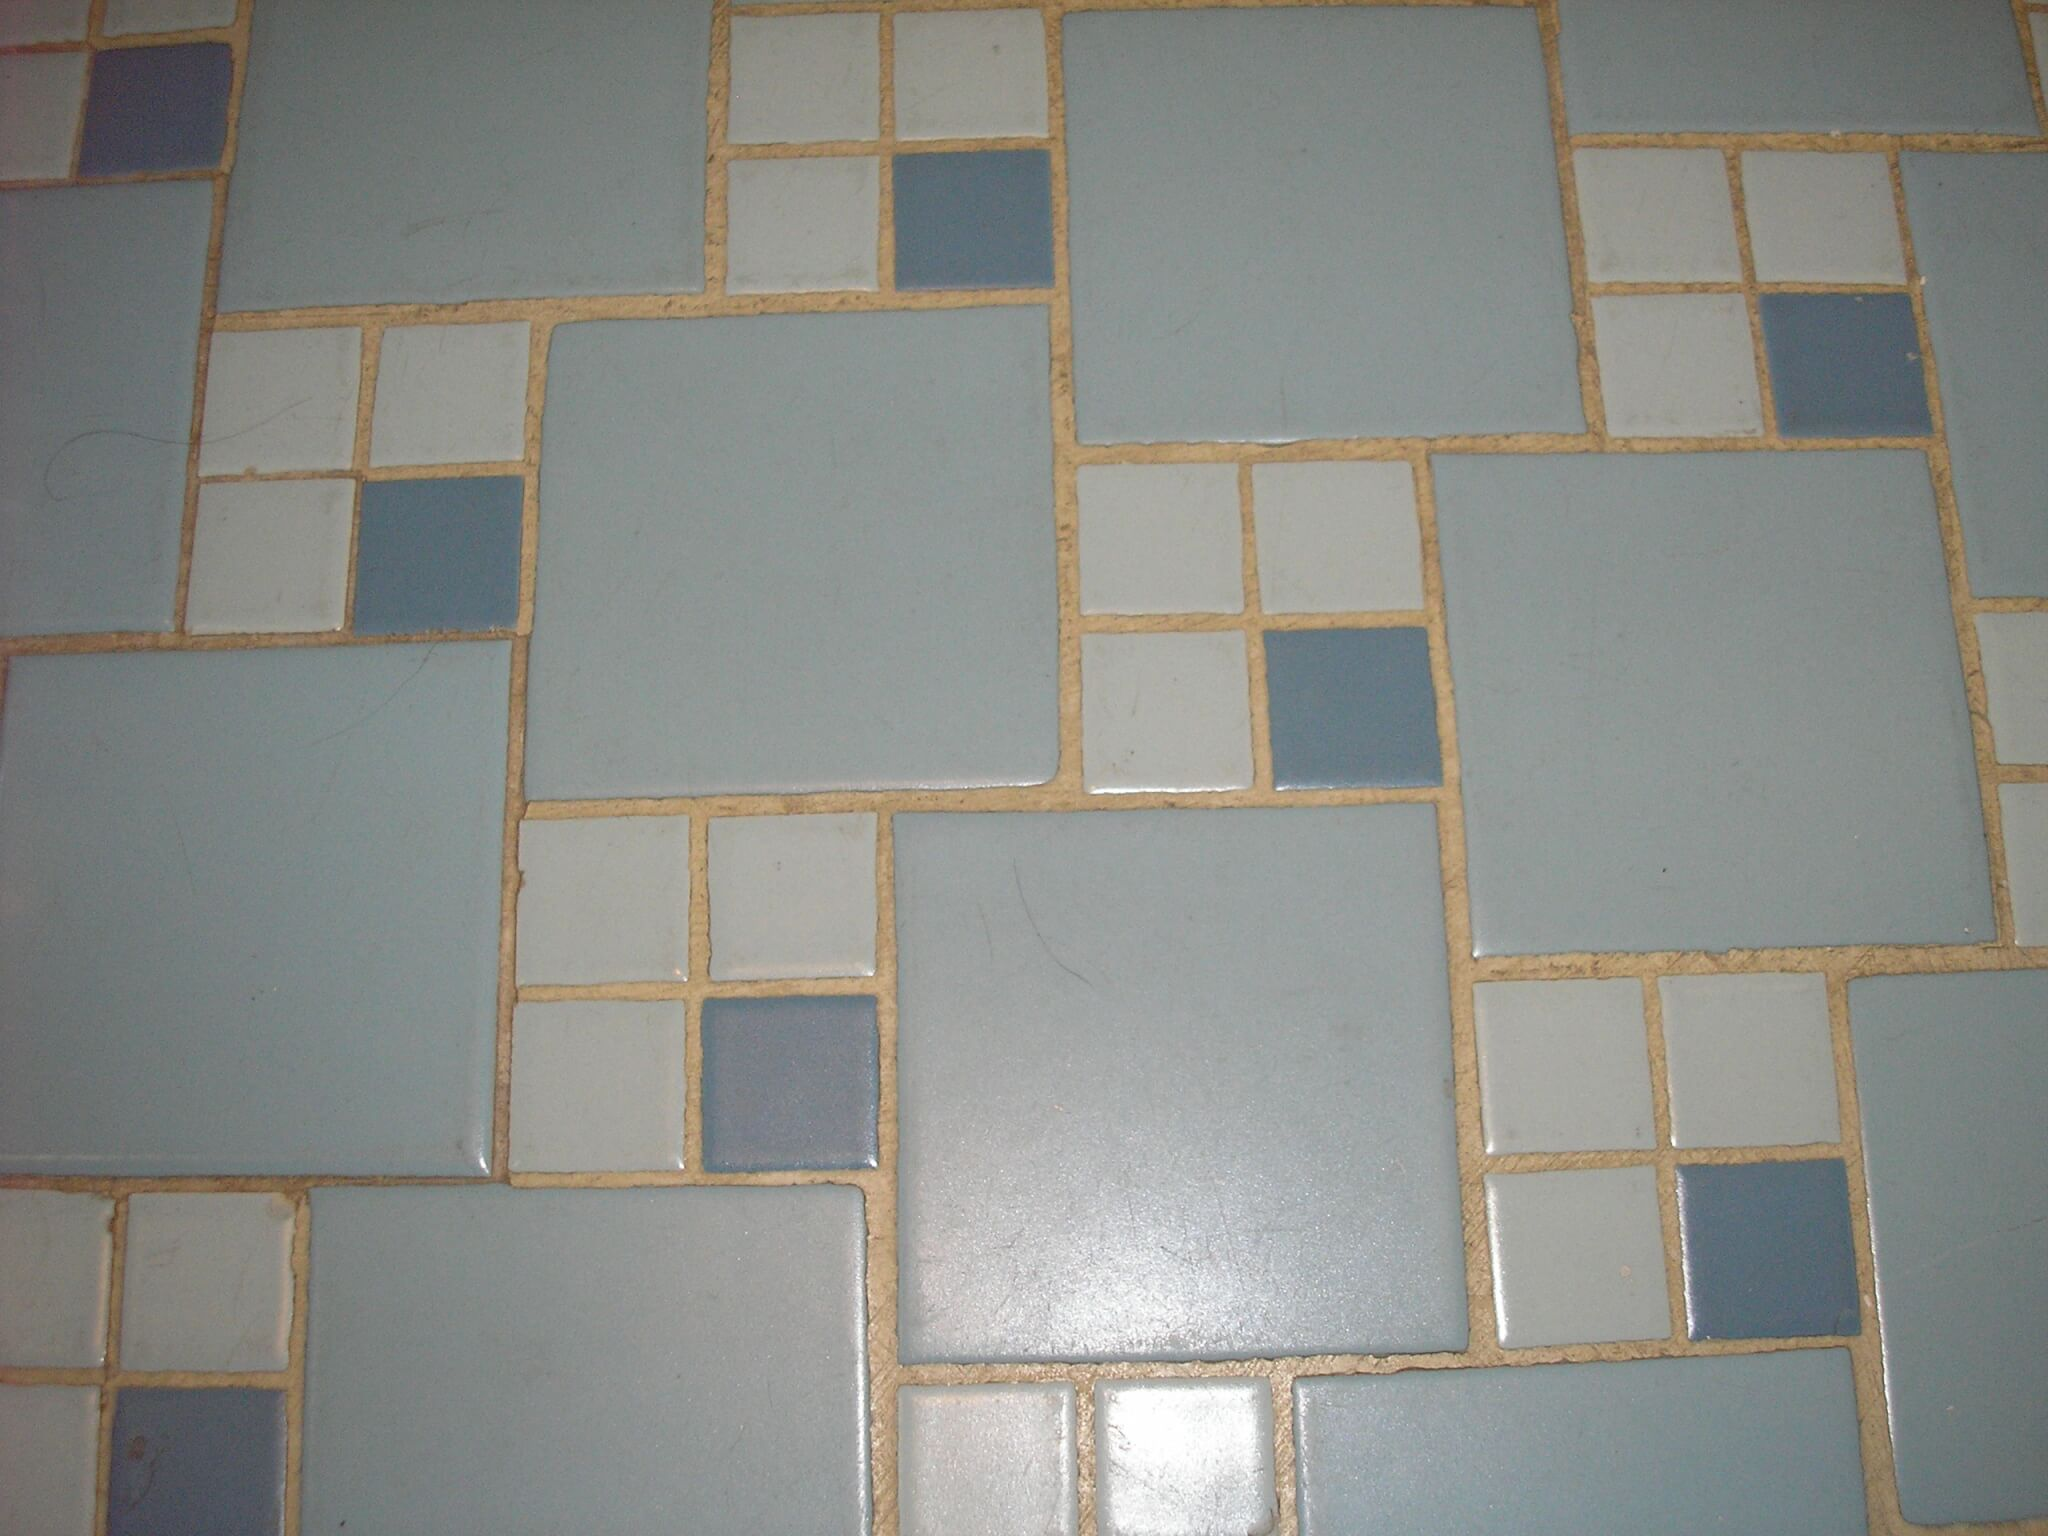 Bathroom Floor Tiles Blue : Interlocking floor mats how to lay self adhesive